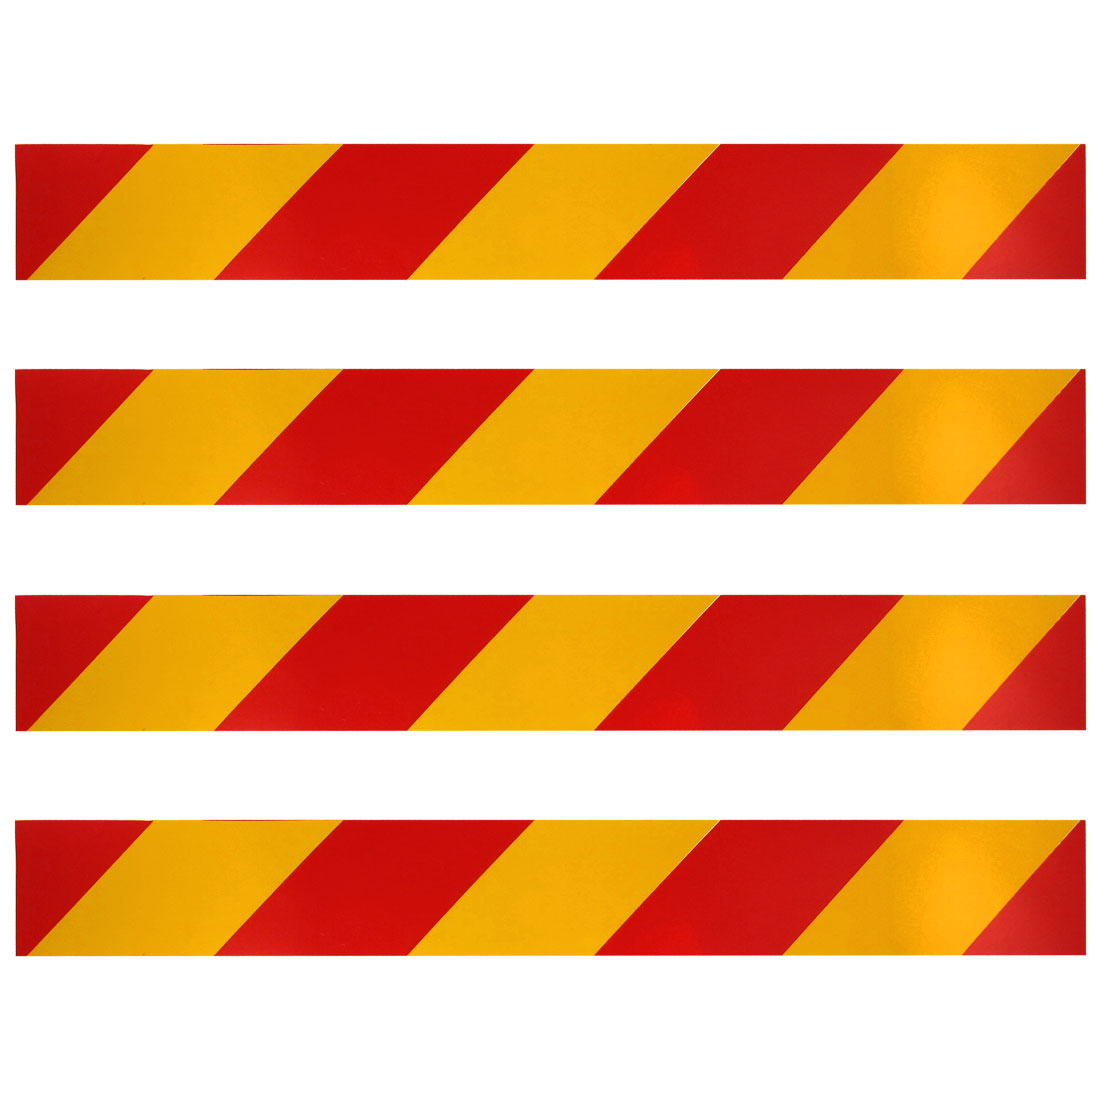 40cm x 5cm Striped Print Car Reflective Stickers Decals Yellow Red 4 Pcs